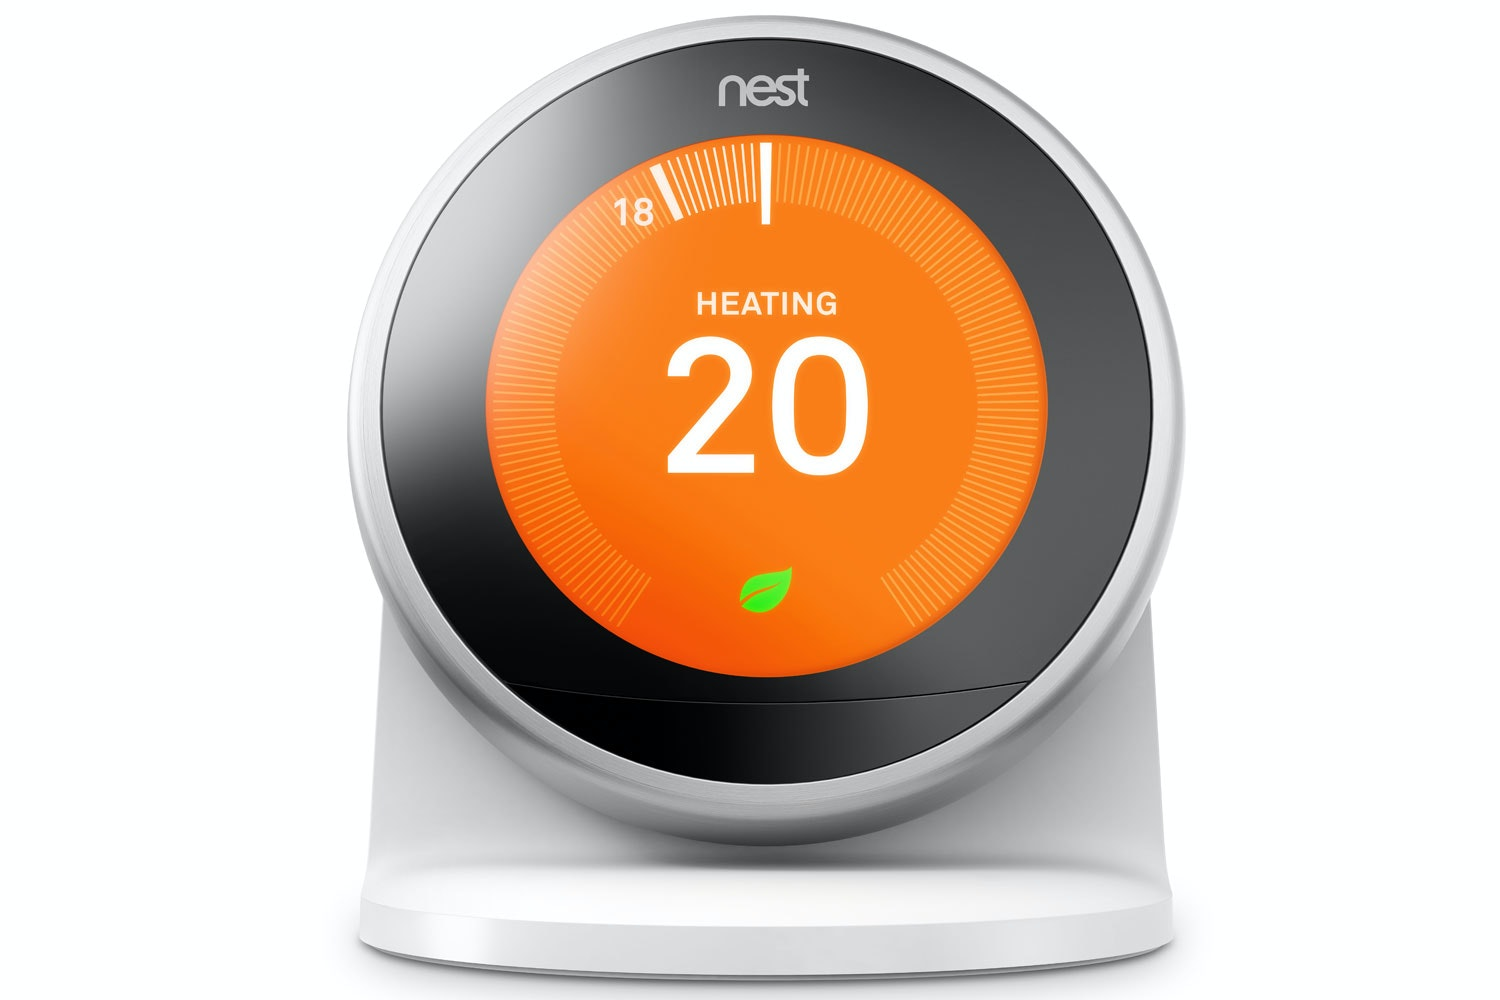 Nest Stand | For 3rd Generation Nest Thermostat